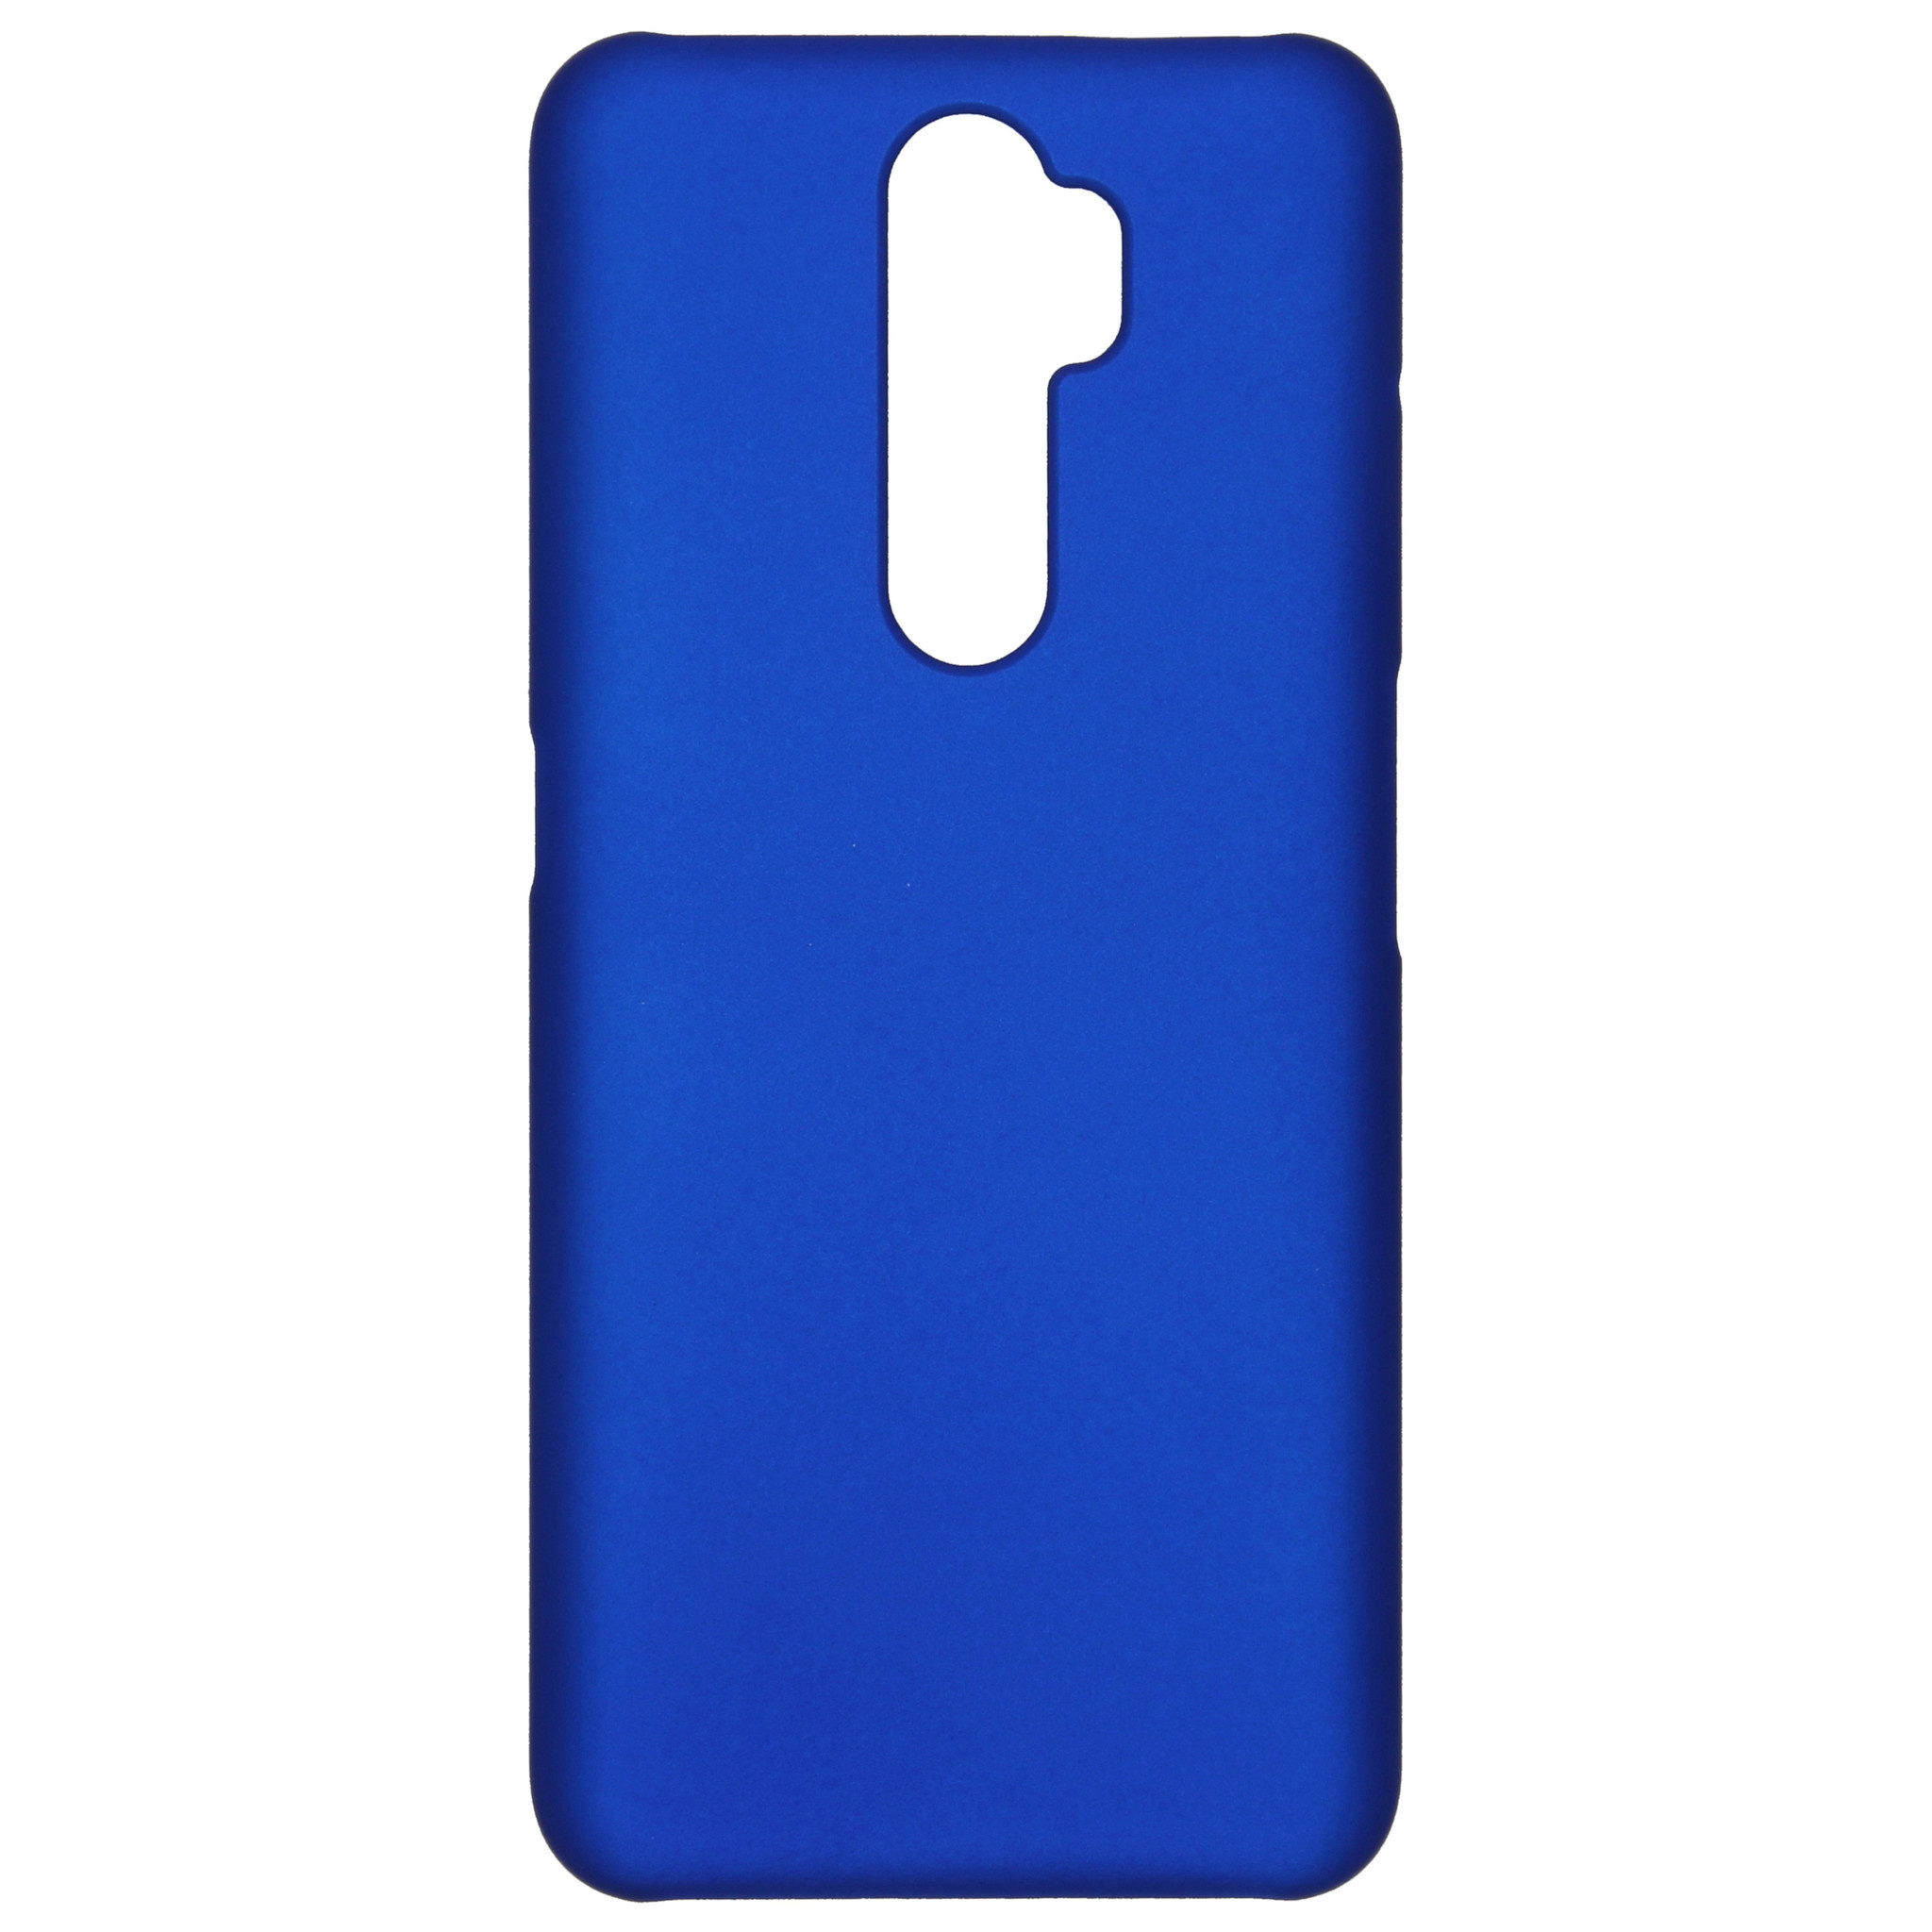 Effen Backcover Oppo A5 (2020) / A9 (2020) - Blauw